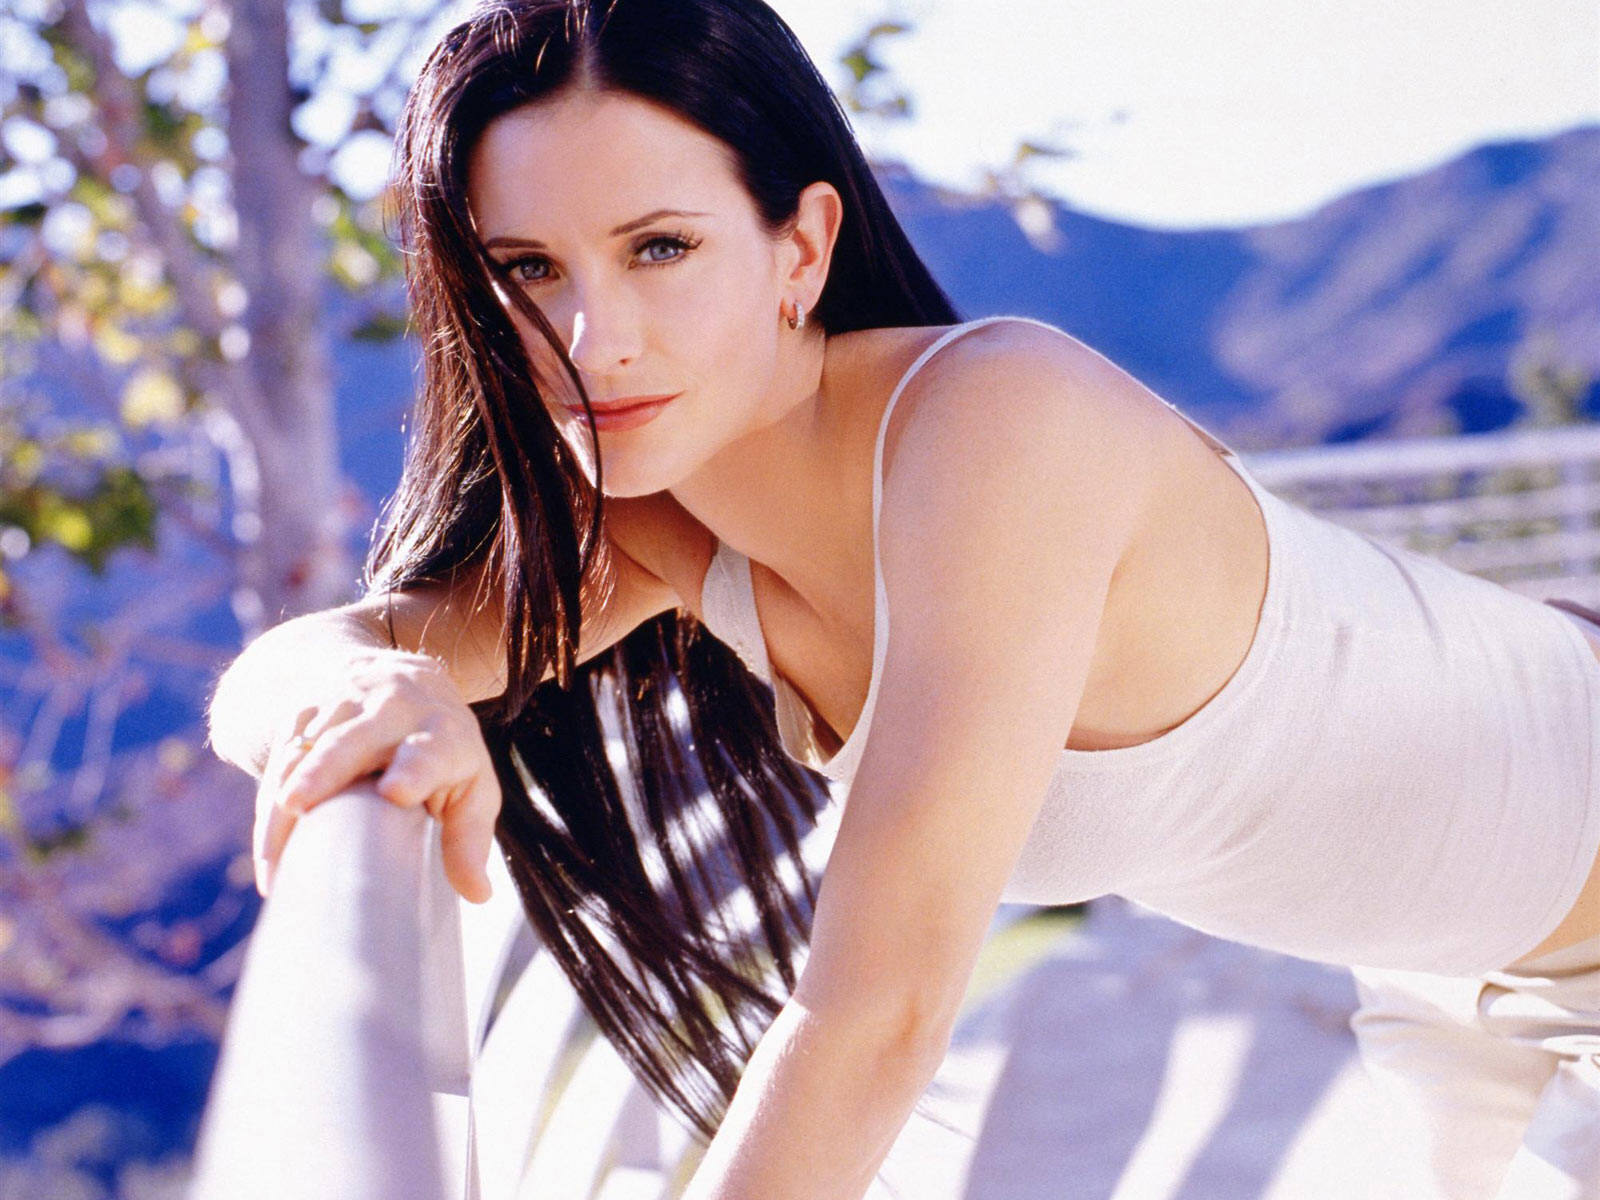 Courteney Cox Beautiful Pose